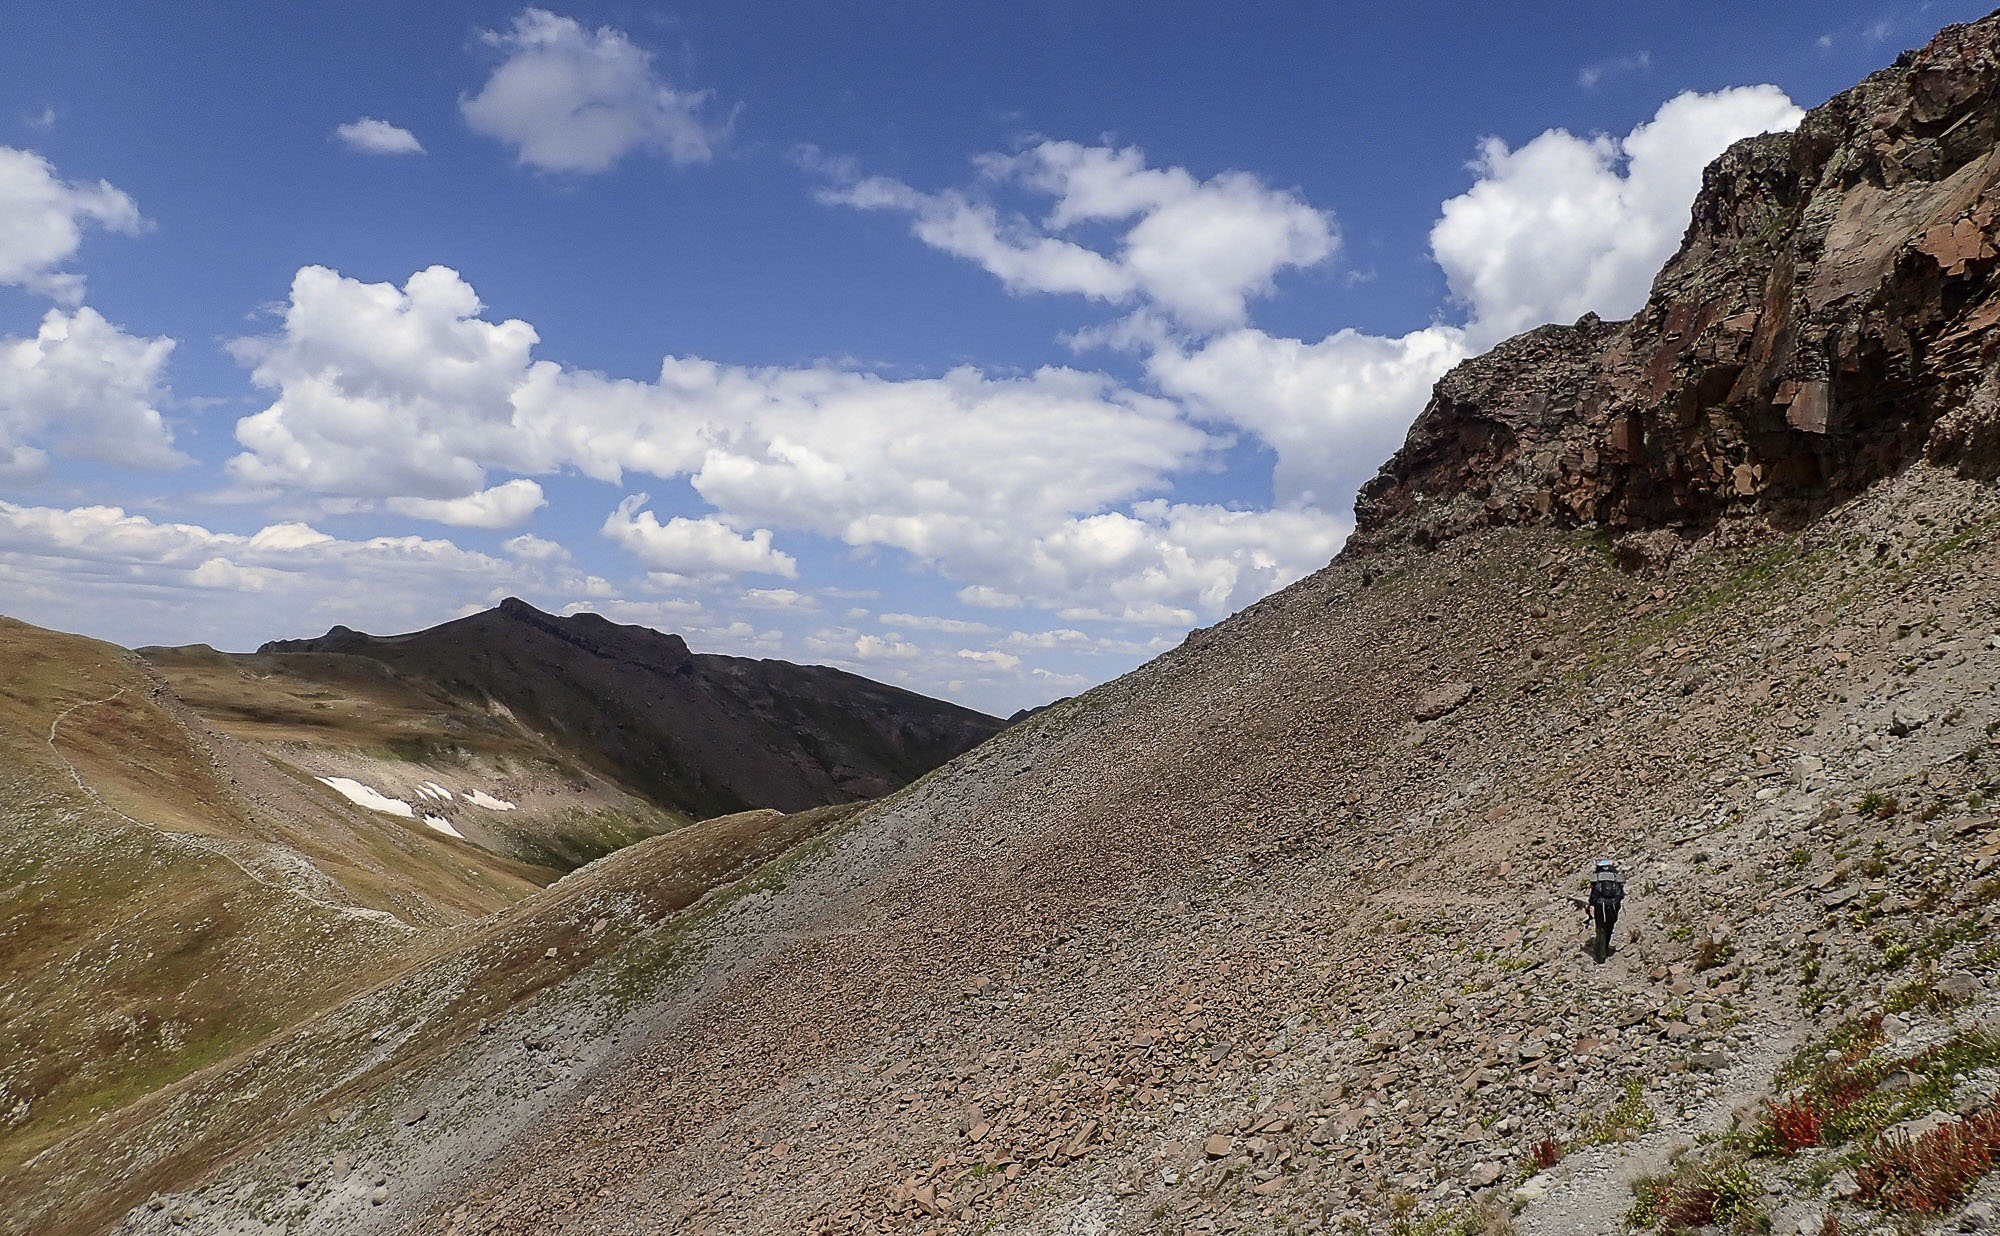 A hiker on a scree field in the Collegiate Range